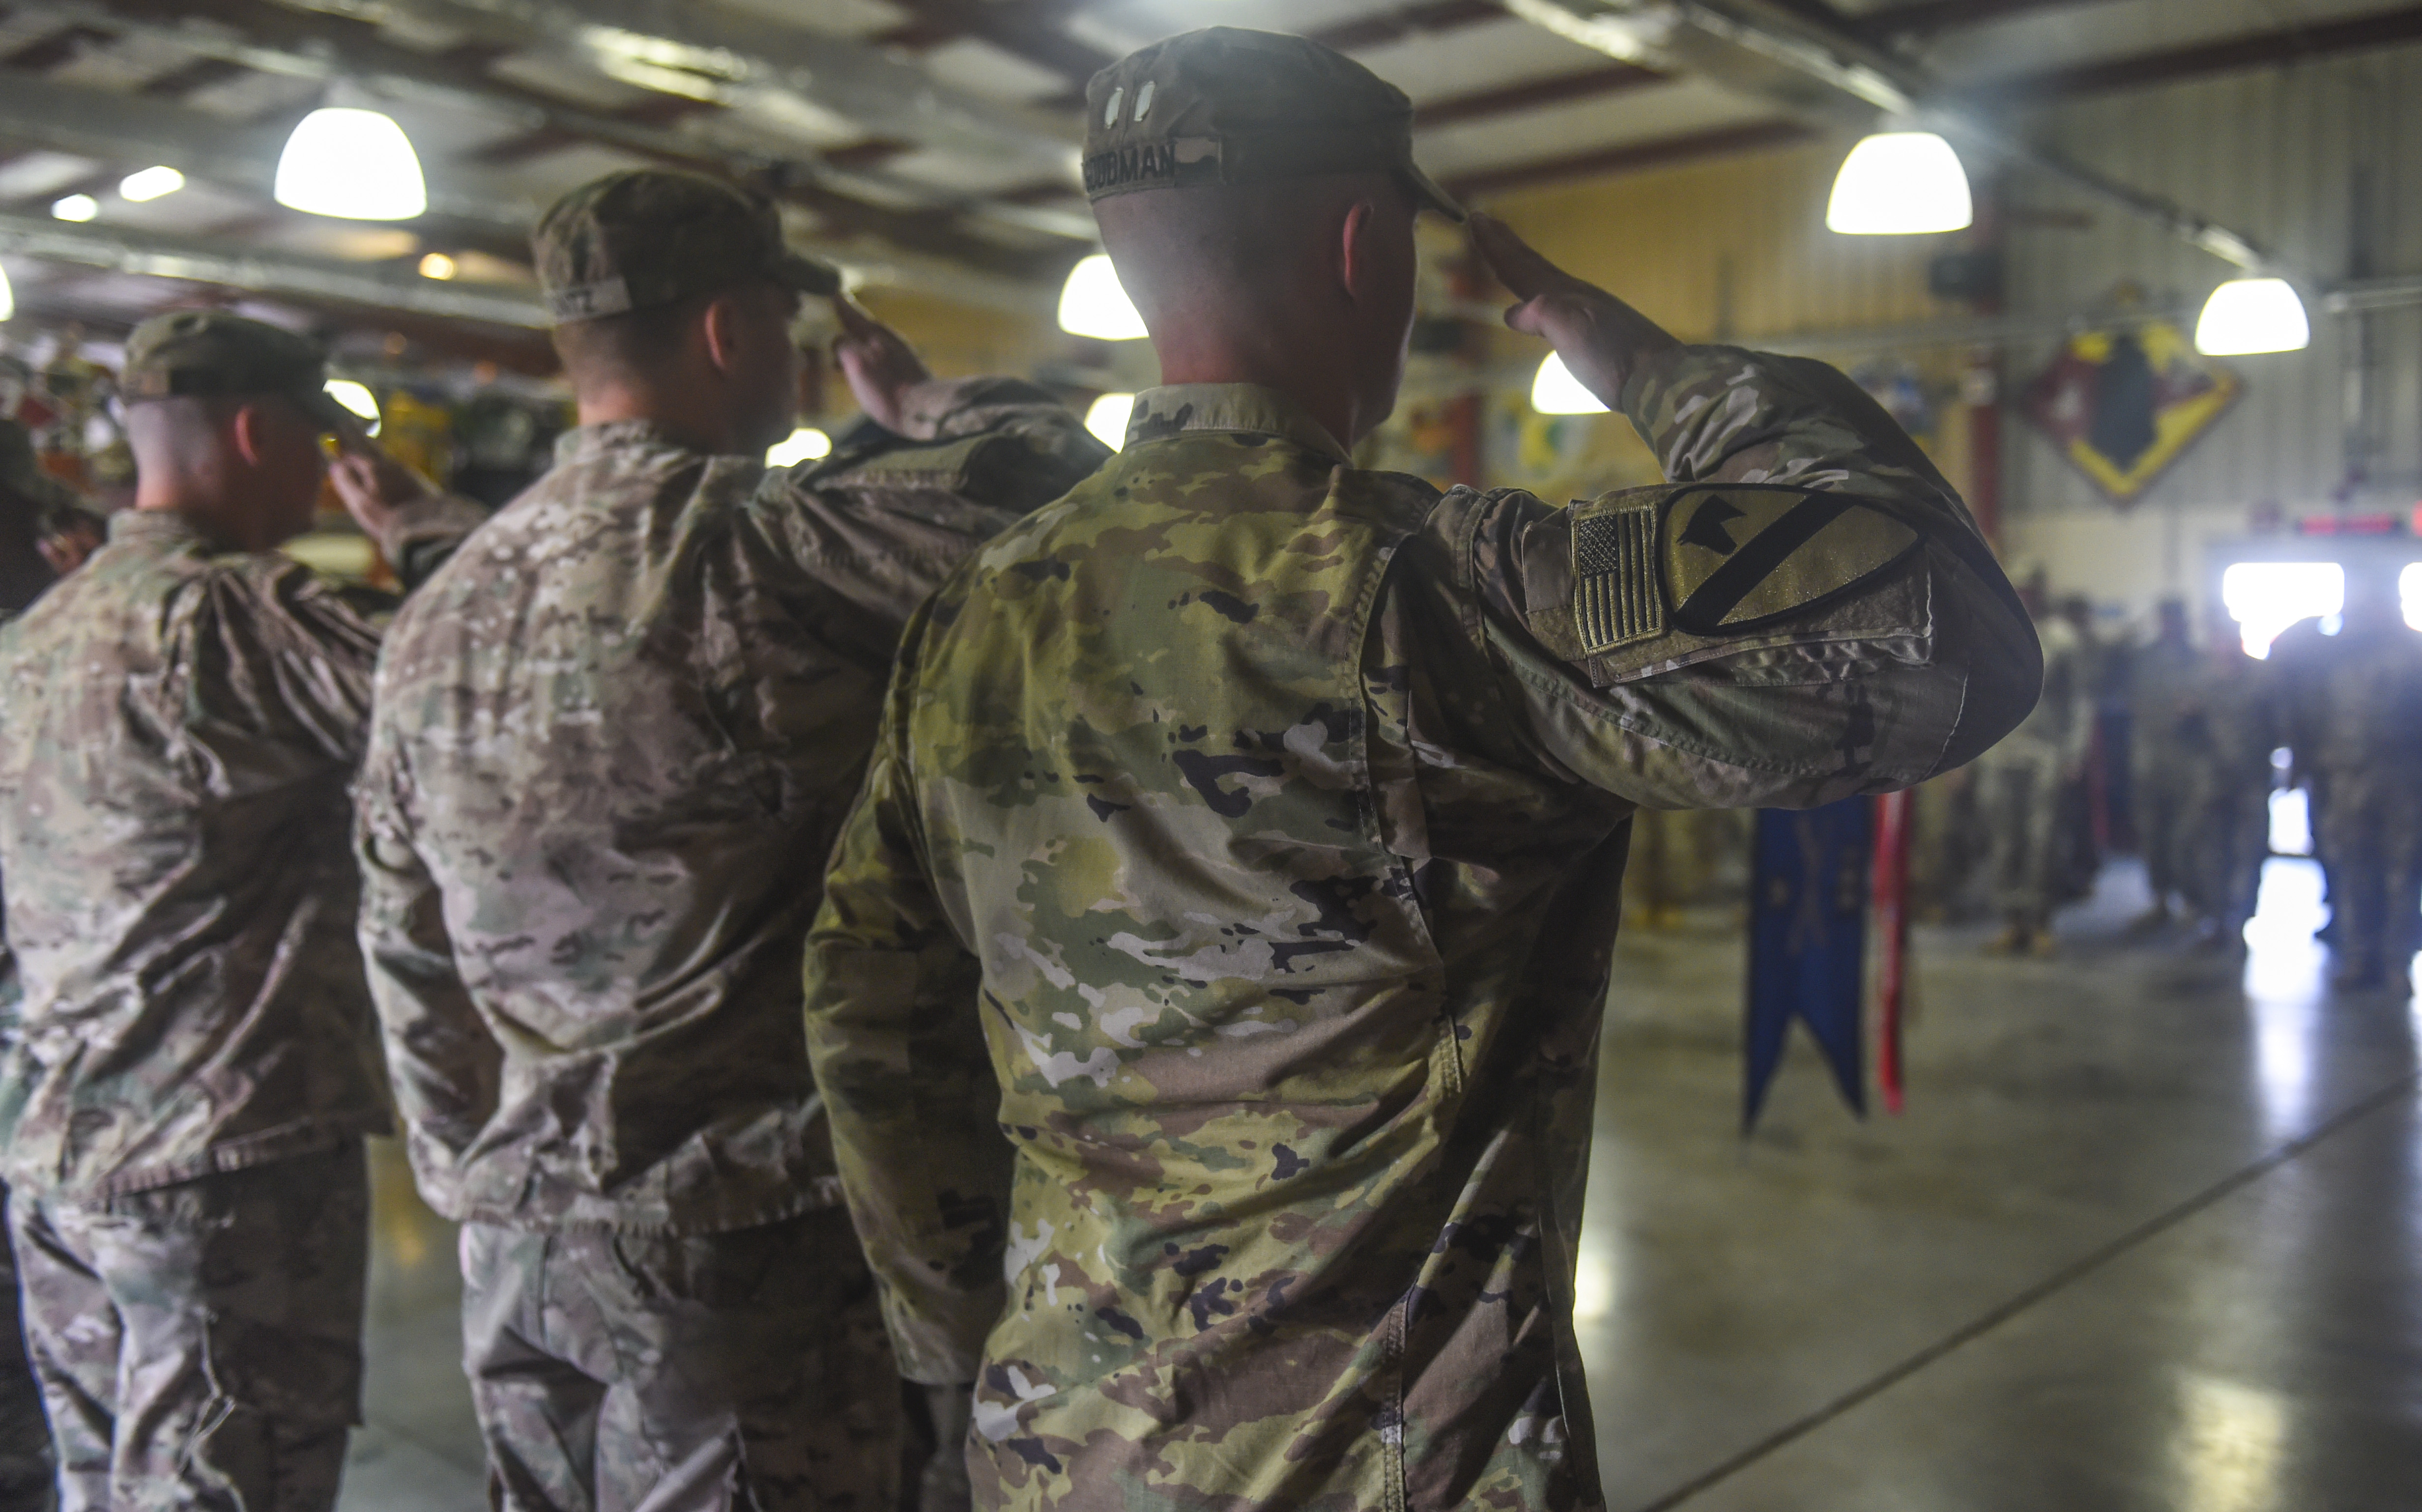 U.S. Army Soldiers assigned to the 1st Battalion, 153rd Infantry Regiment render salutes during a transfer of authority ceremony at Camp Lemonnier, Djibouti, Nov. 1, 2017. During the ceremony, the 1-153rd transferred mission authority to the 3rd Battalion, 144th Infantry Regiment. During their rotation as Task Force Warrior, the 1-153rd IN Soldiers provided security force assistance and force protection for U.S. interests and partner nations at Camp Lemonnier and in the Combined Joint Task Force – Horn of Africa's area of responsibility. (U.S. Air Force photo by Staff Sgt. Timothy Moore)